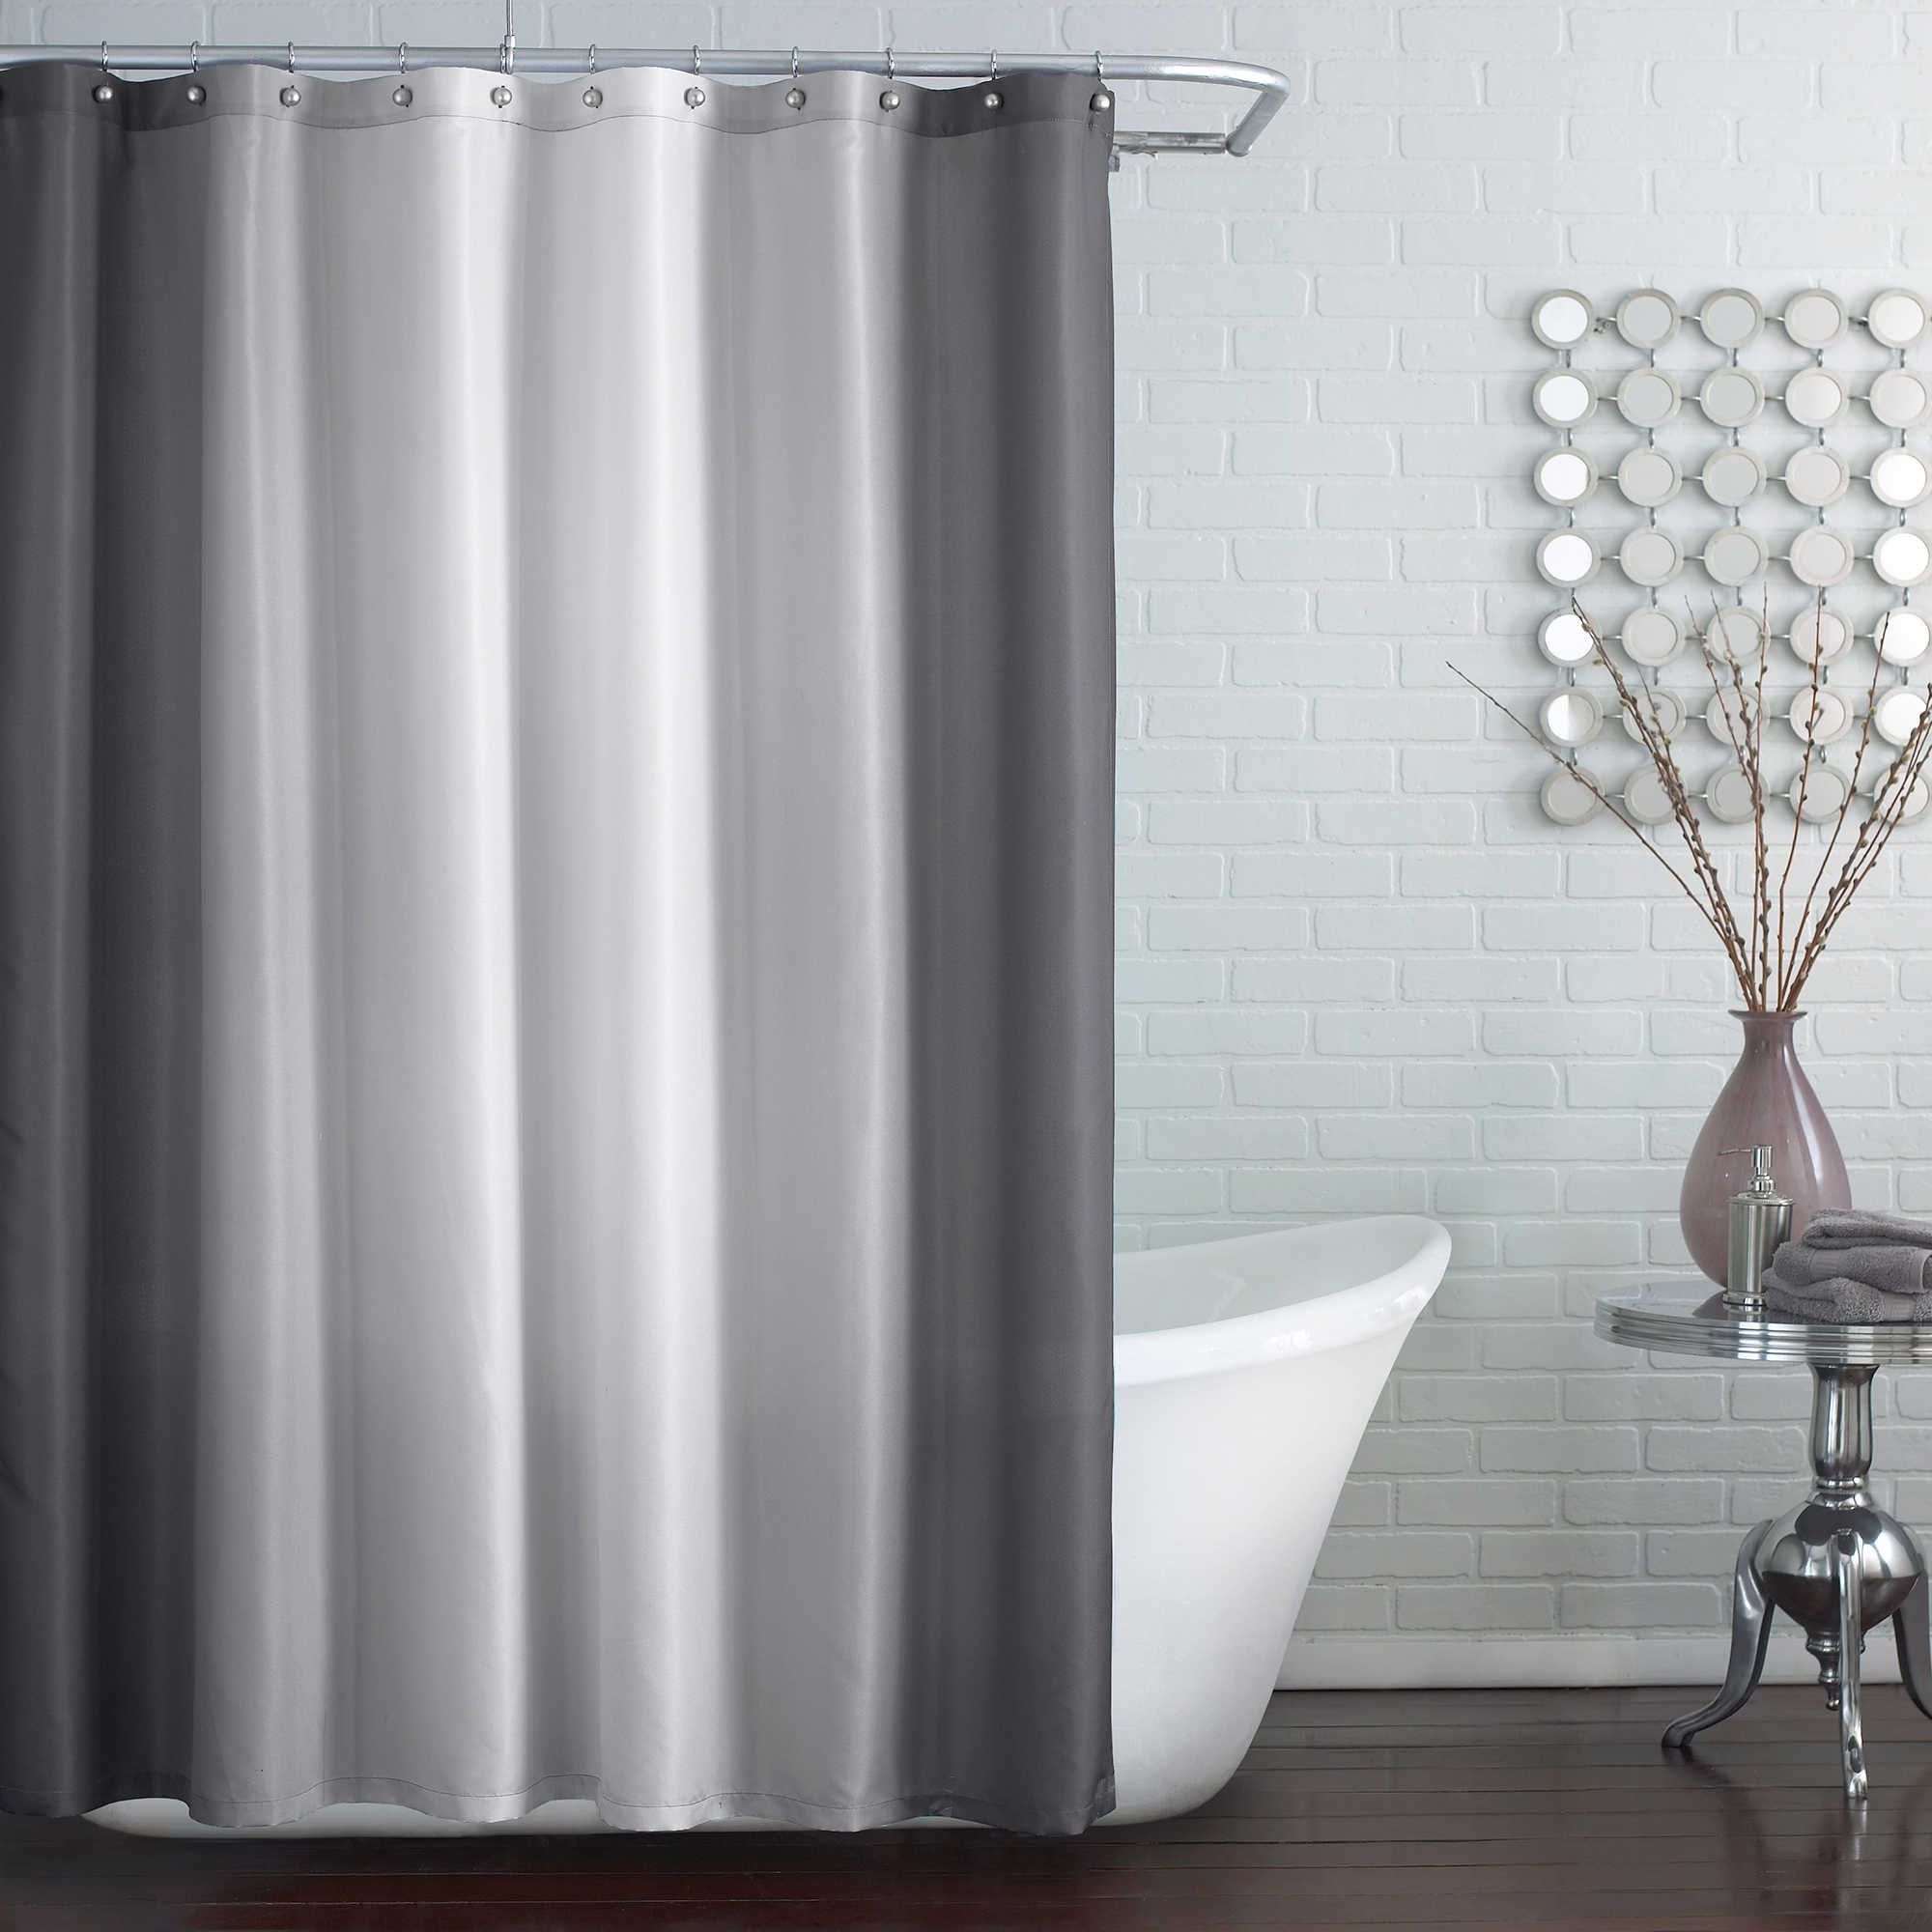 84 Long Shower Curtain